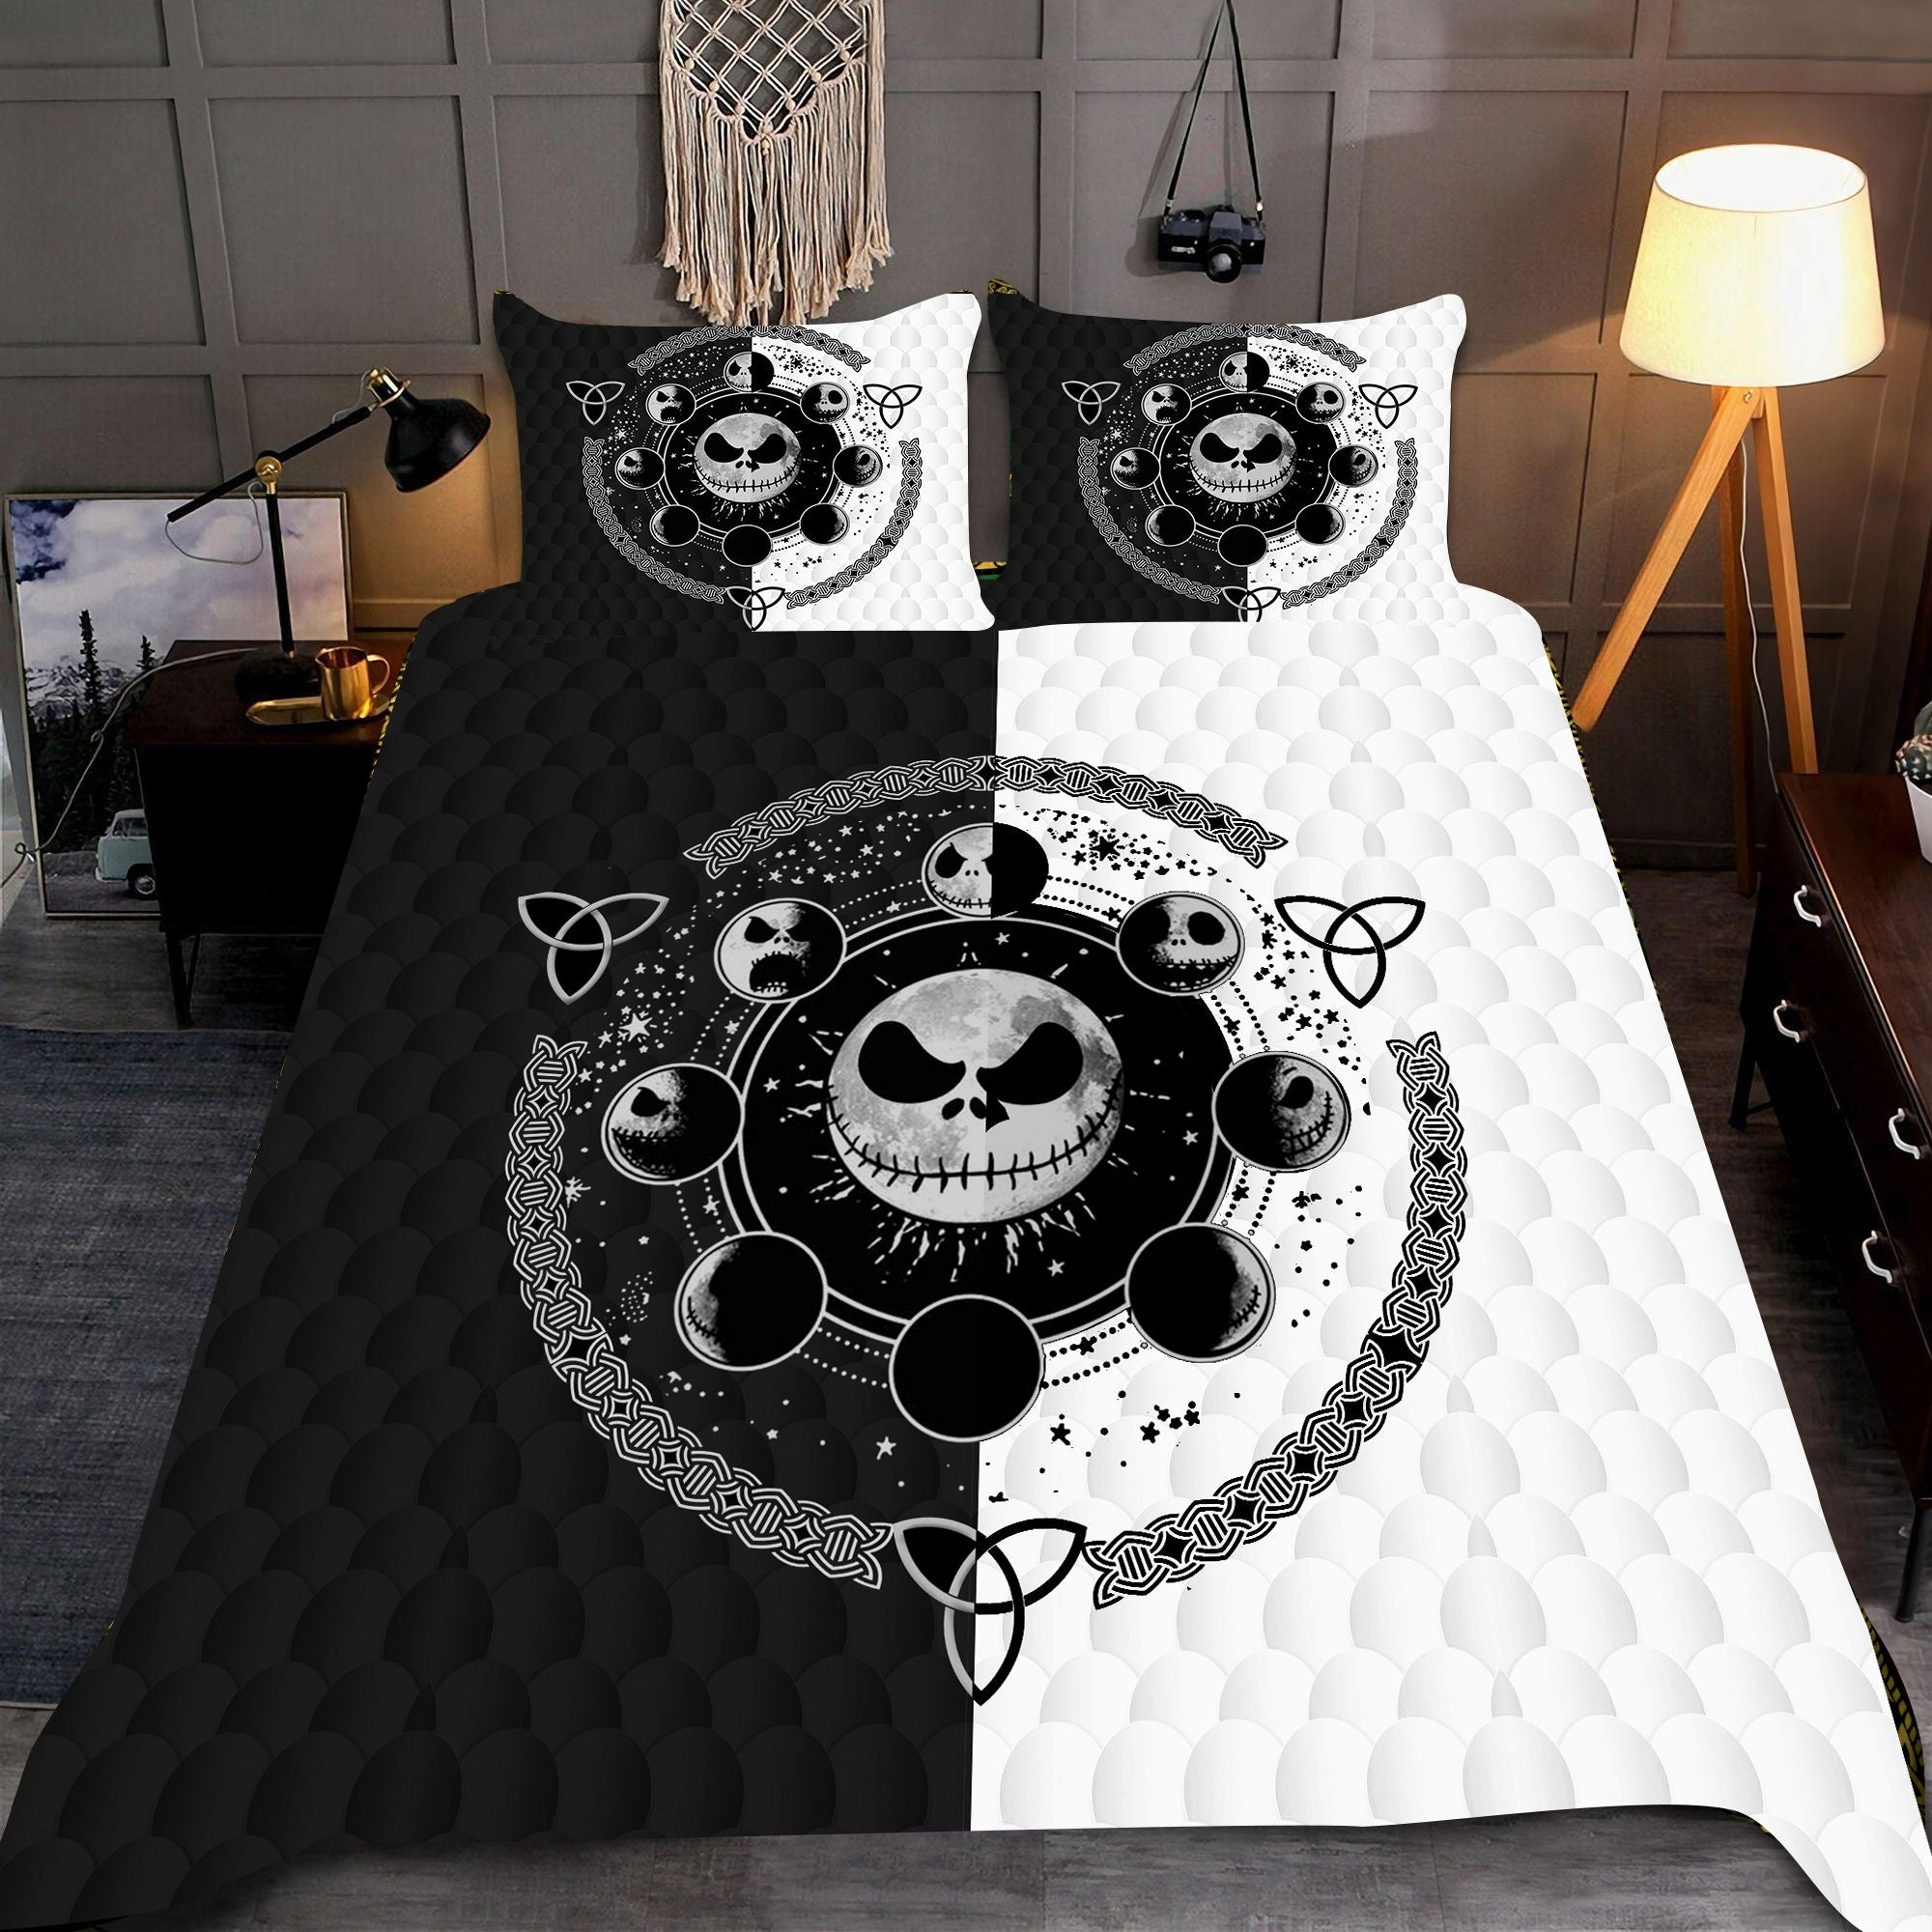 Jack Skellington Bedding Set 568